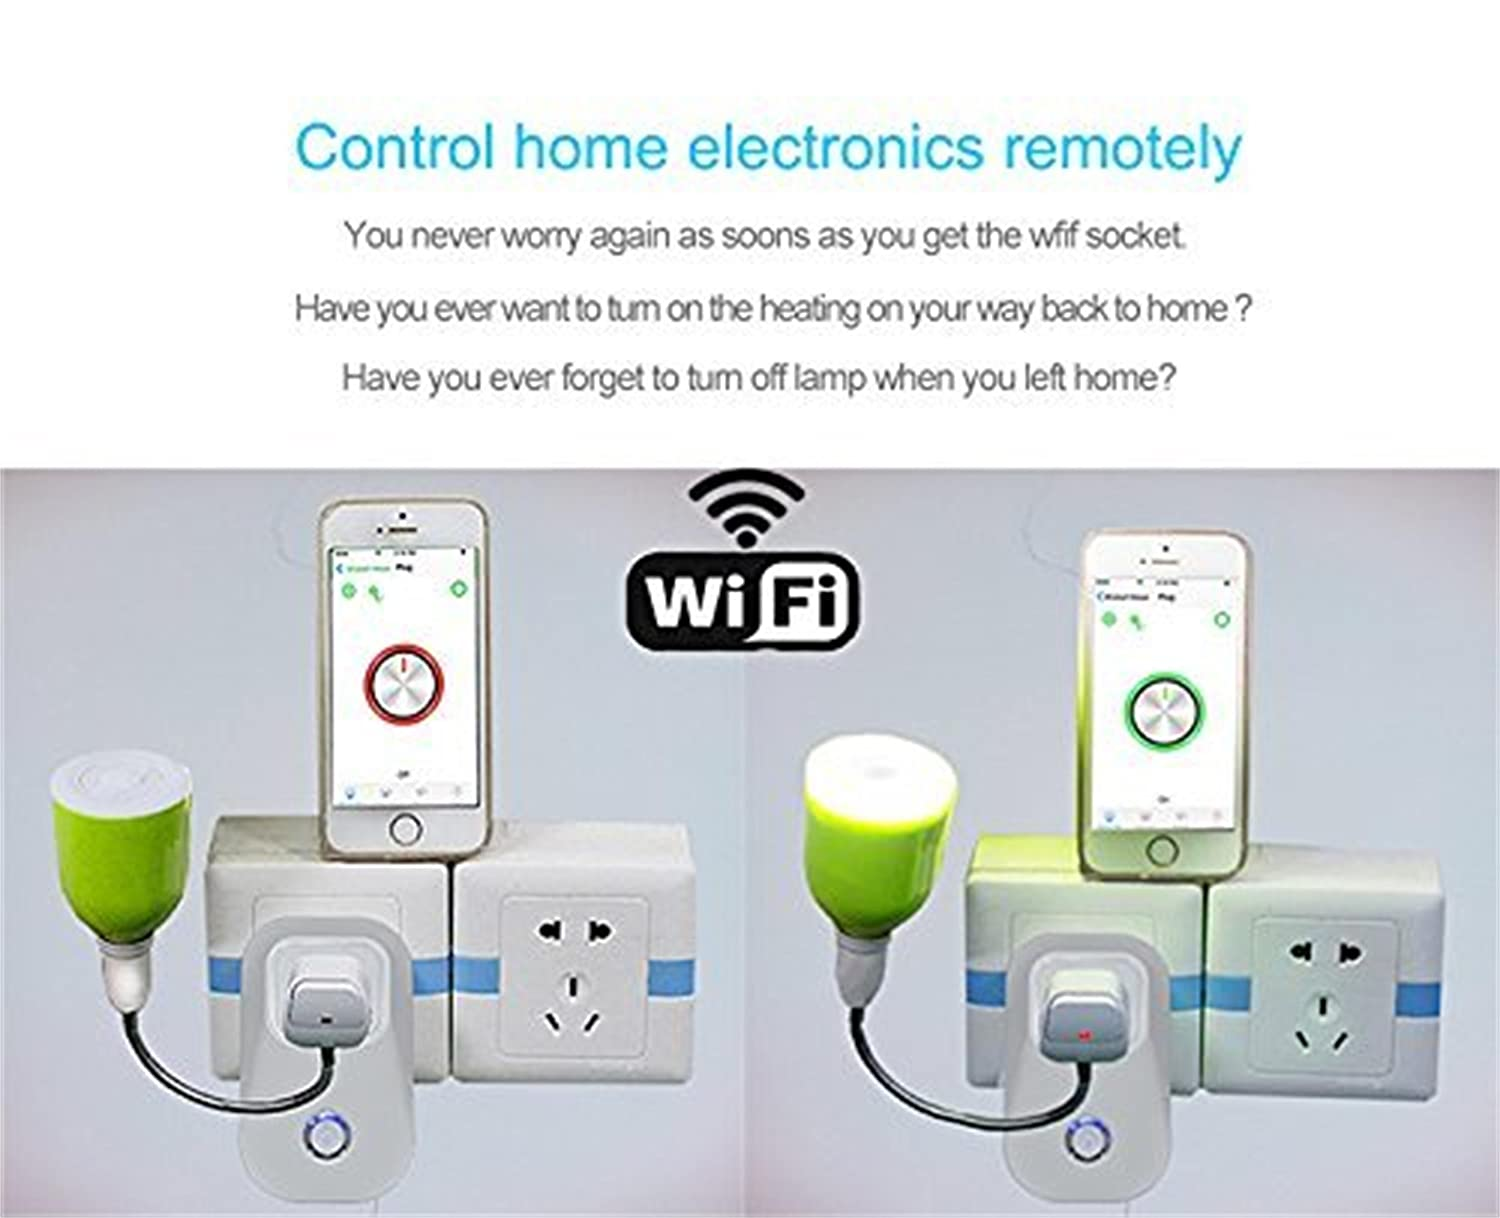 Wireless Mini Outlet SM-PW702 No Hub Required Timer Plug Compatible With Alexa, Remote Control Your Devices from Anywhere 4-pack Xenon PW702U WiFi Smart Plug